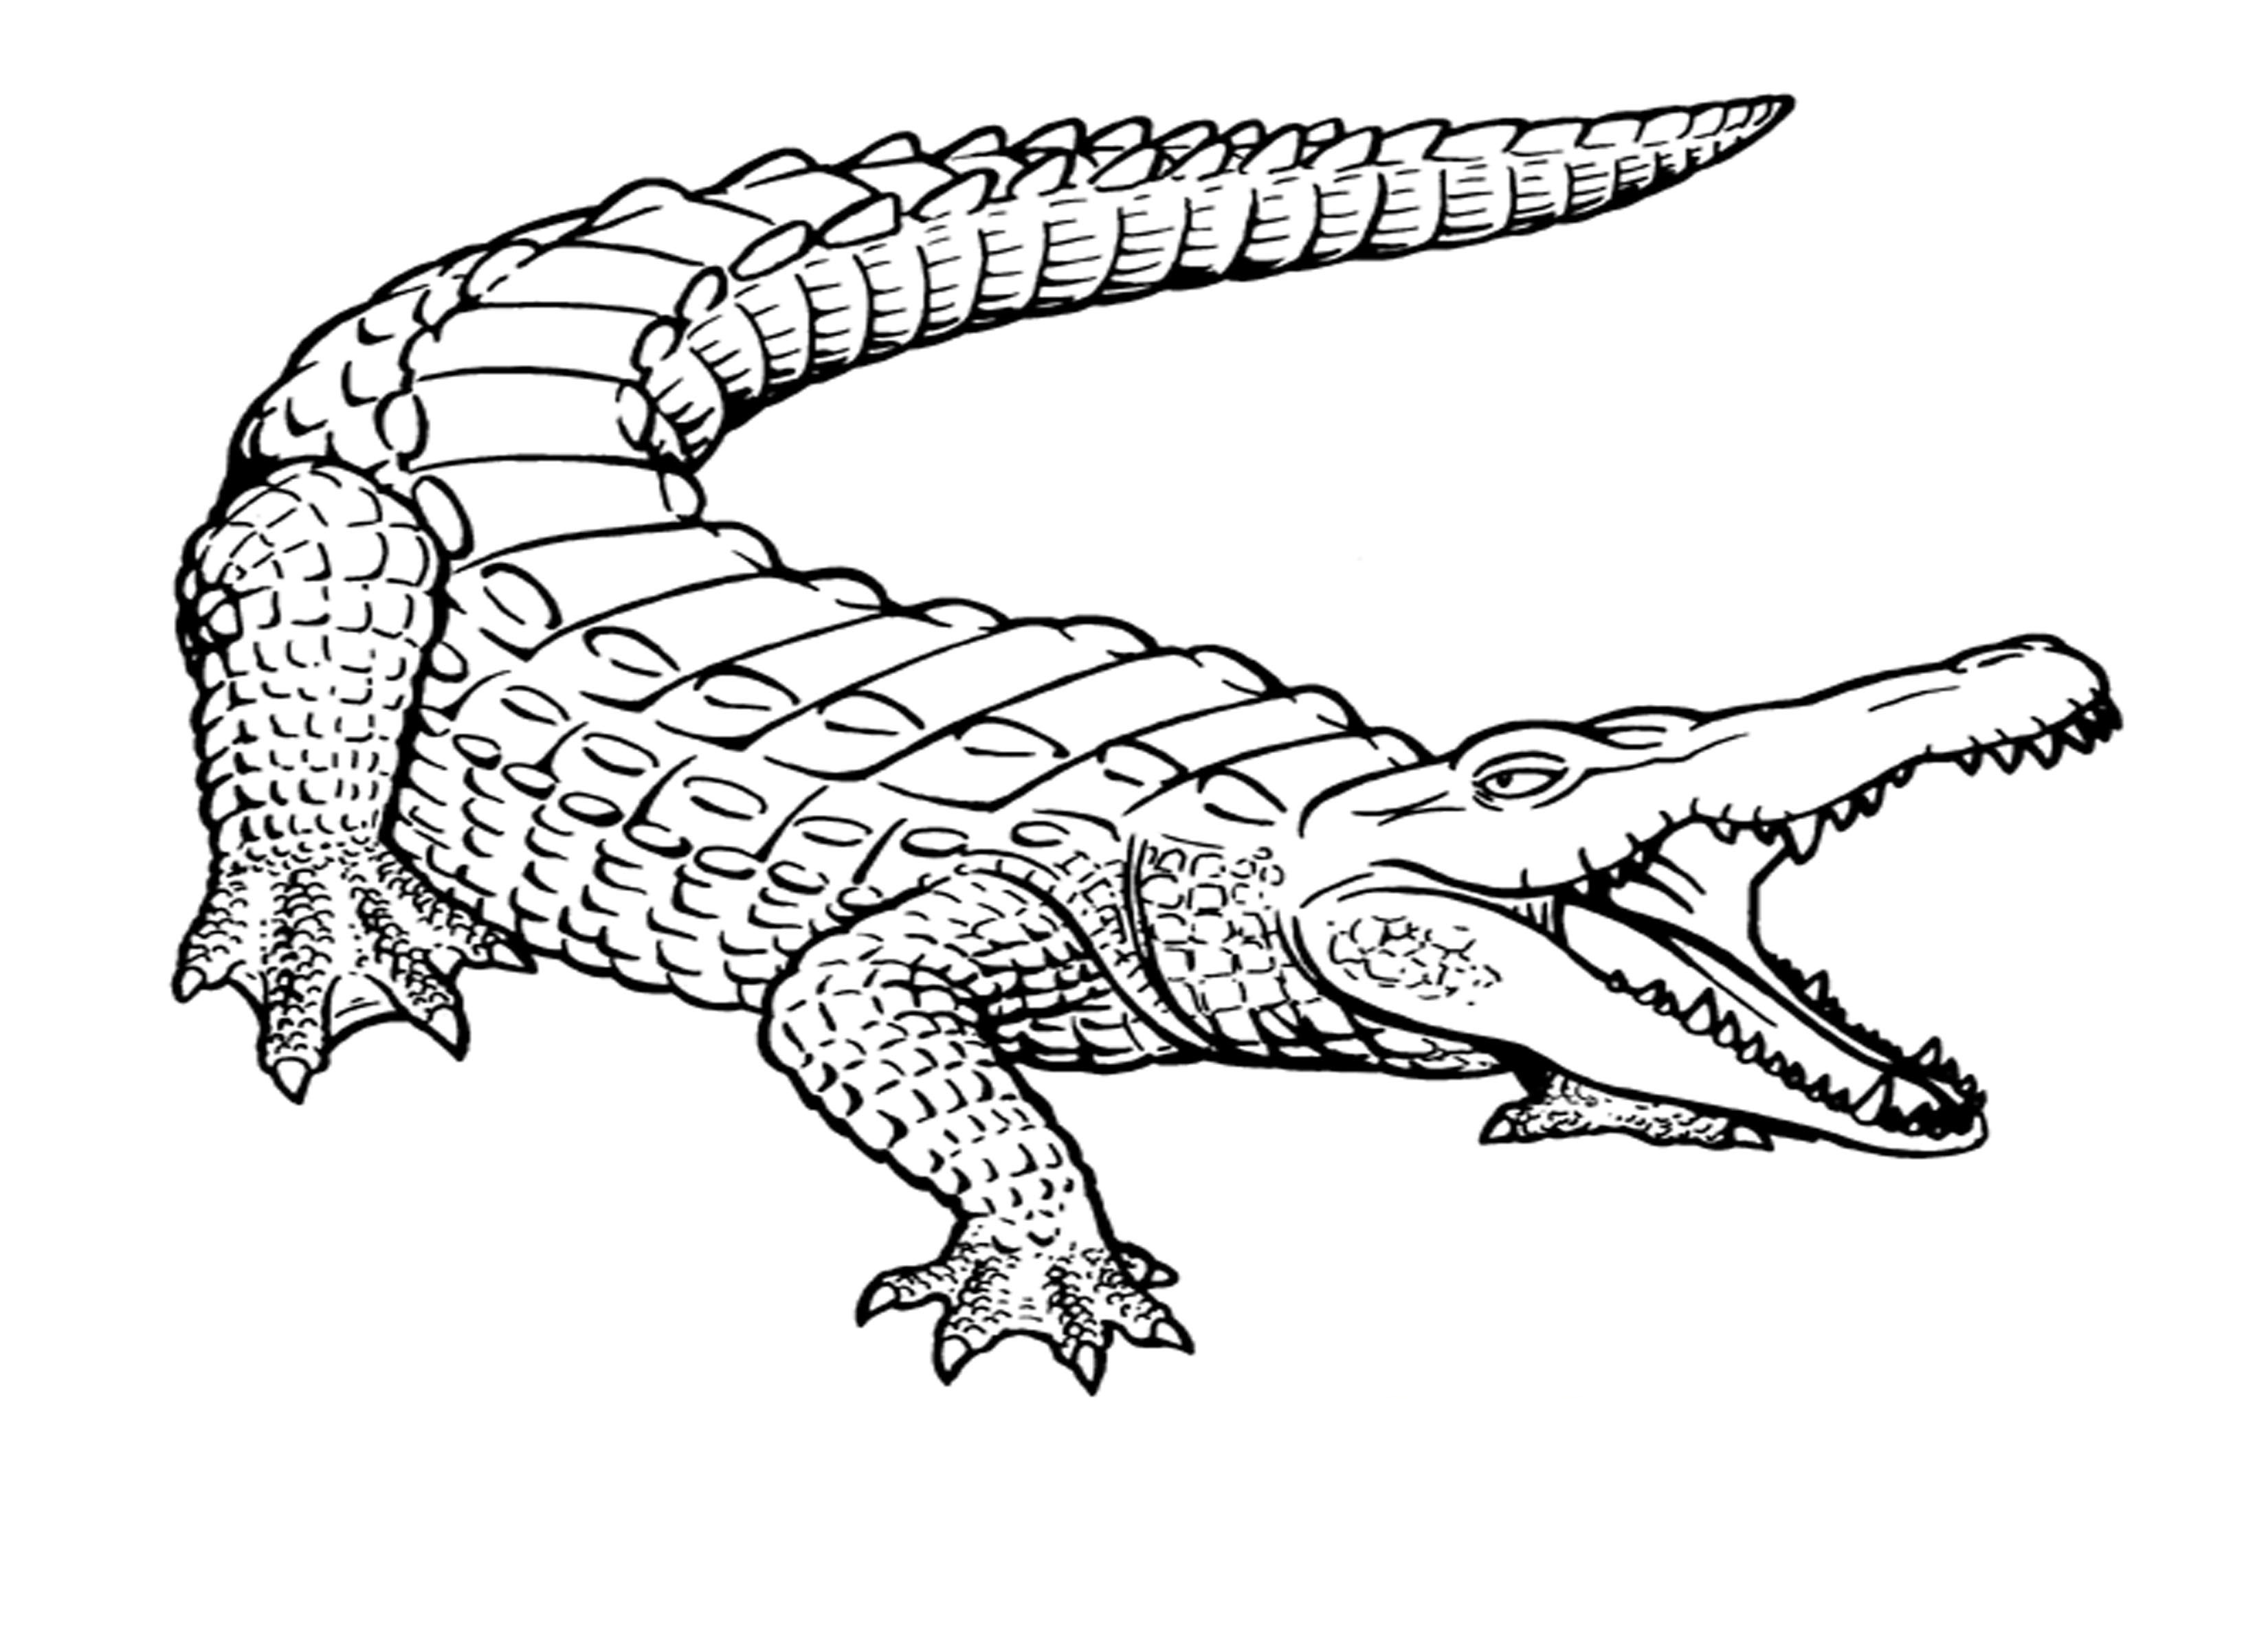 printable coloring pages crocodile - photo#4